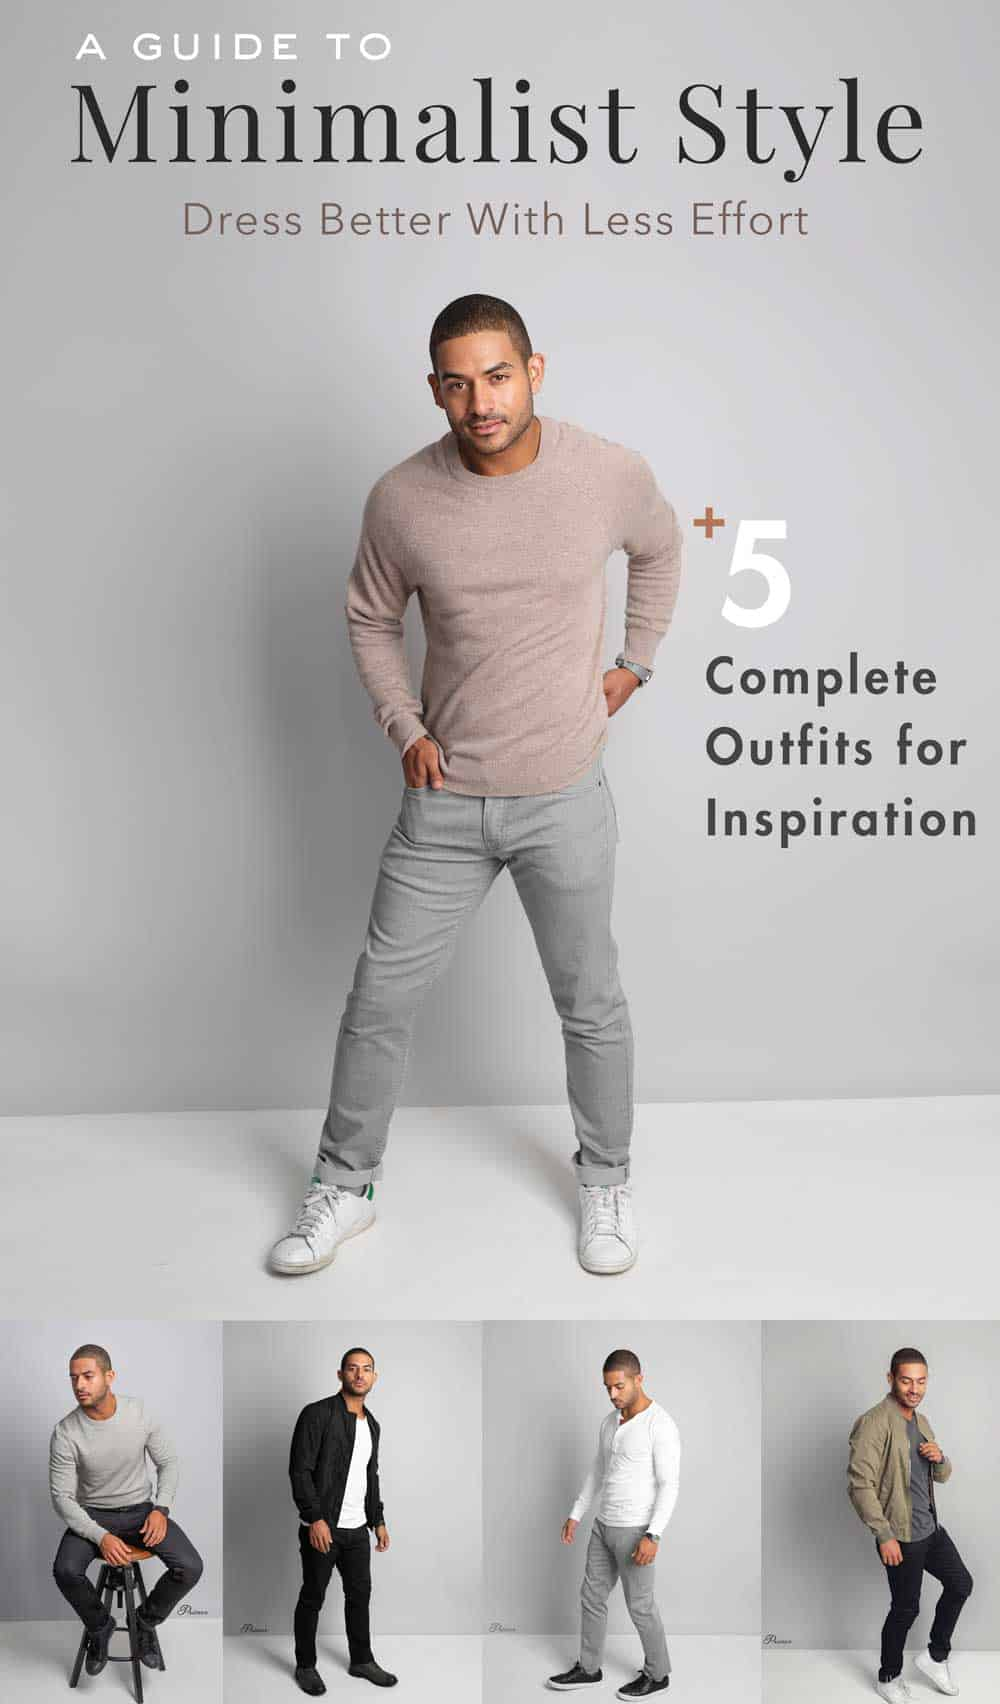 ecfbfe70862 Minimalist Fashion: Dress Better With Less Effort + 5 Complete Getups For  Inspiration!